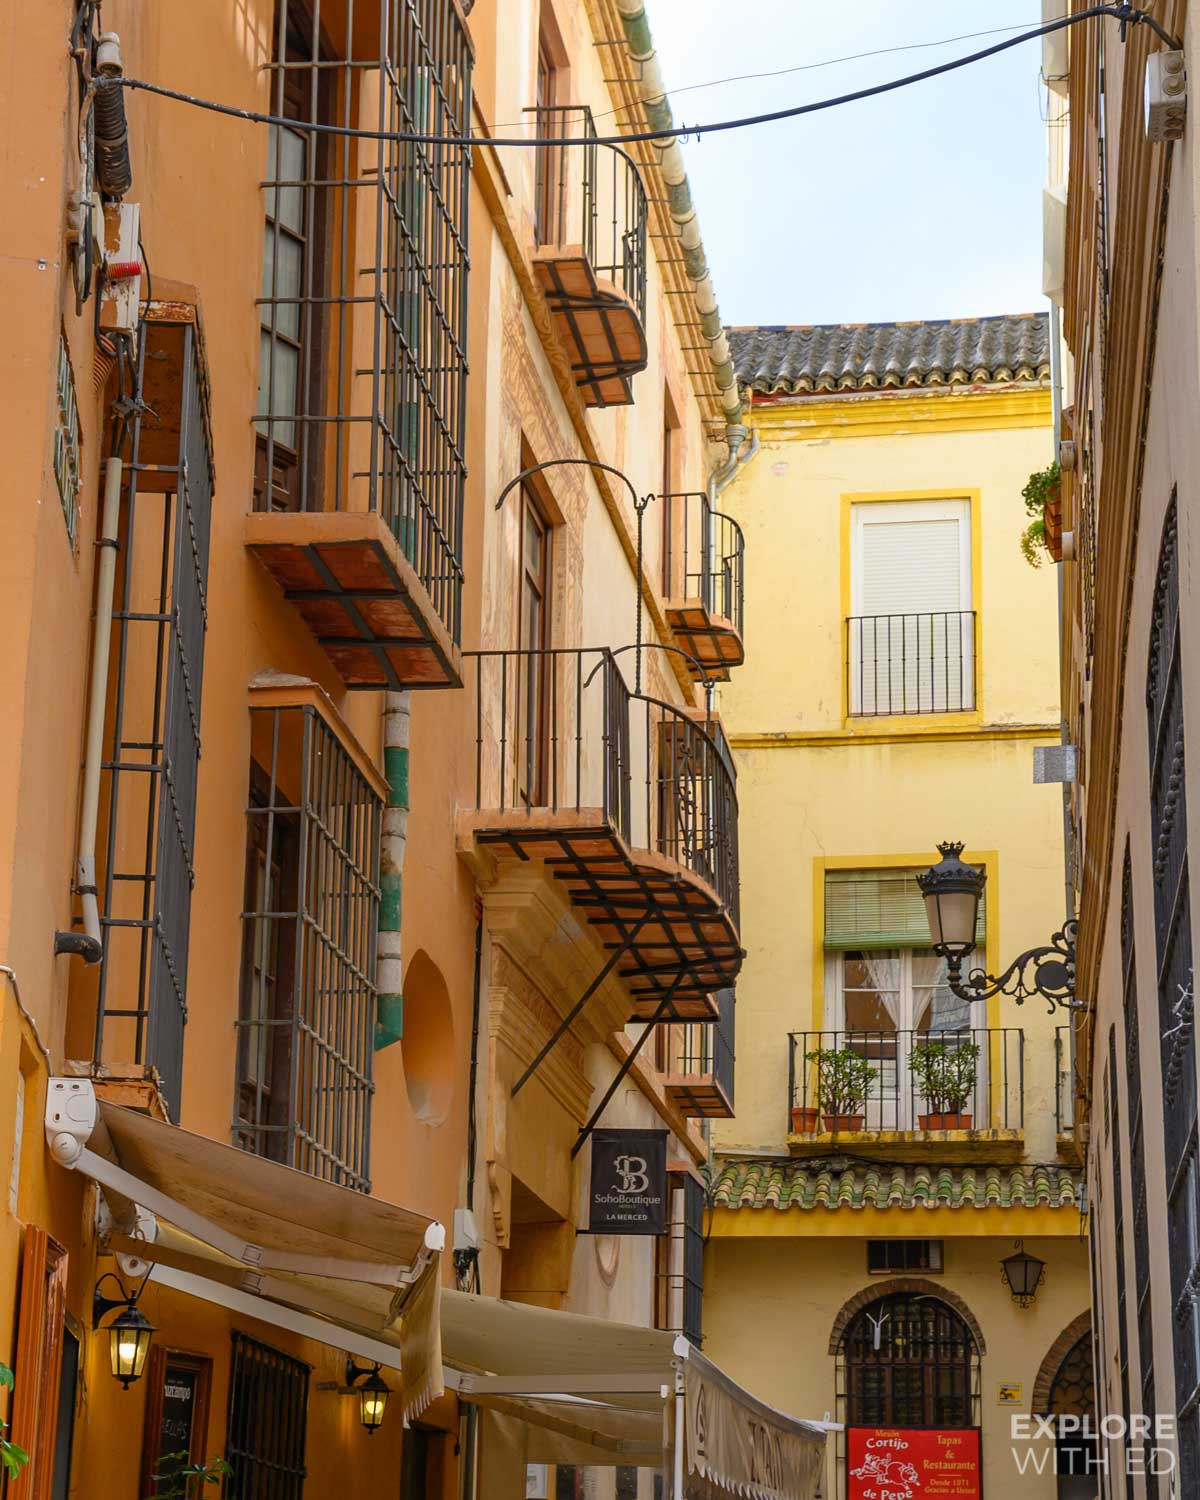 Characterful side streets make great photo spots in Malaga, Spain